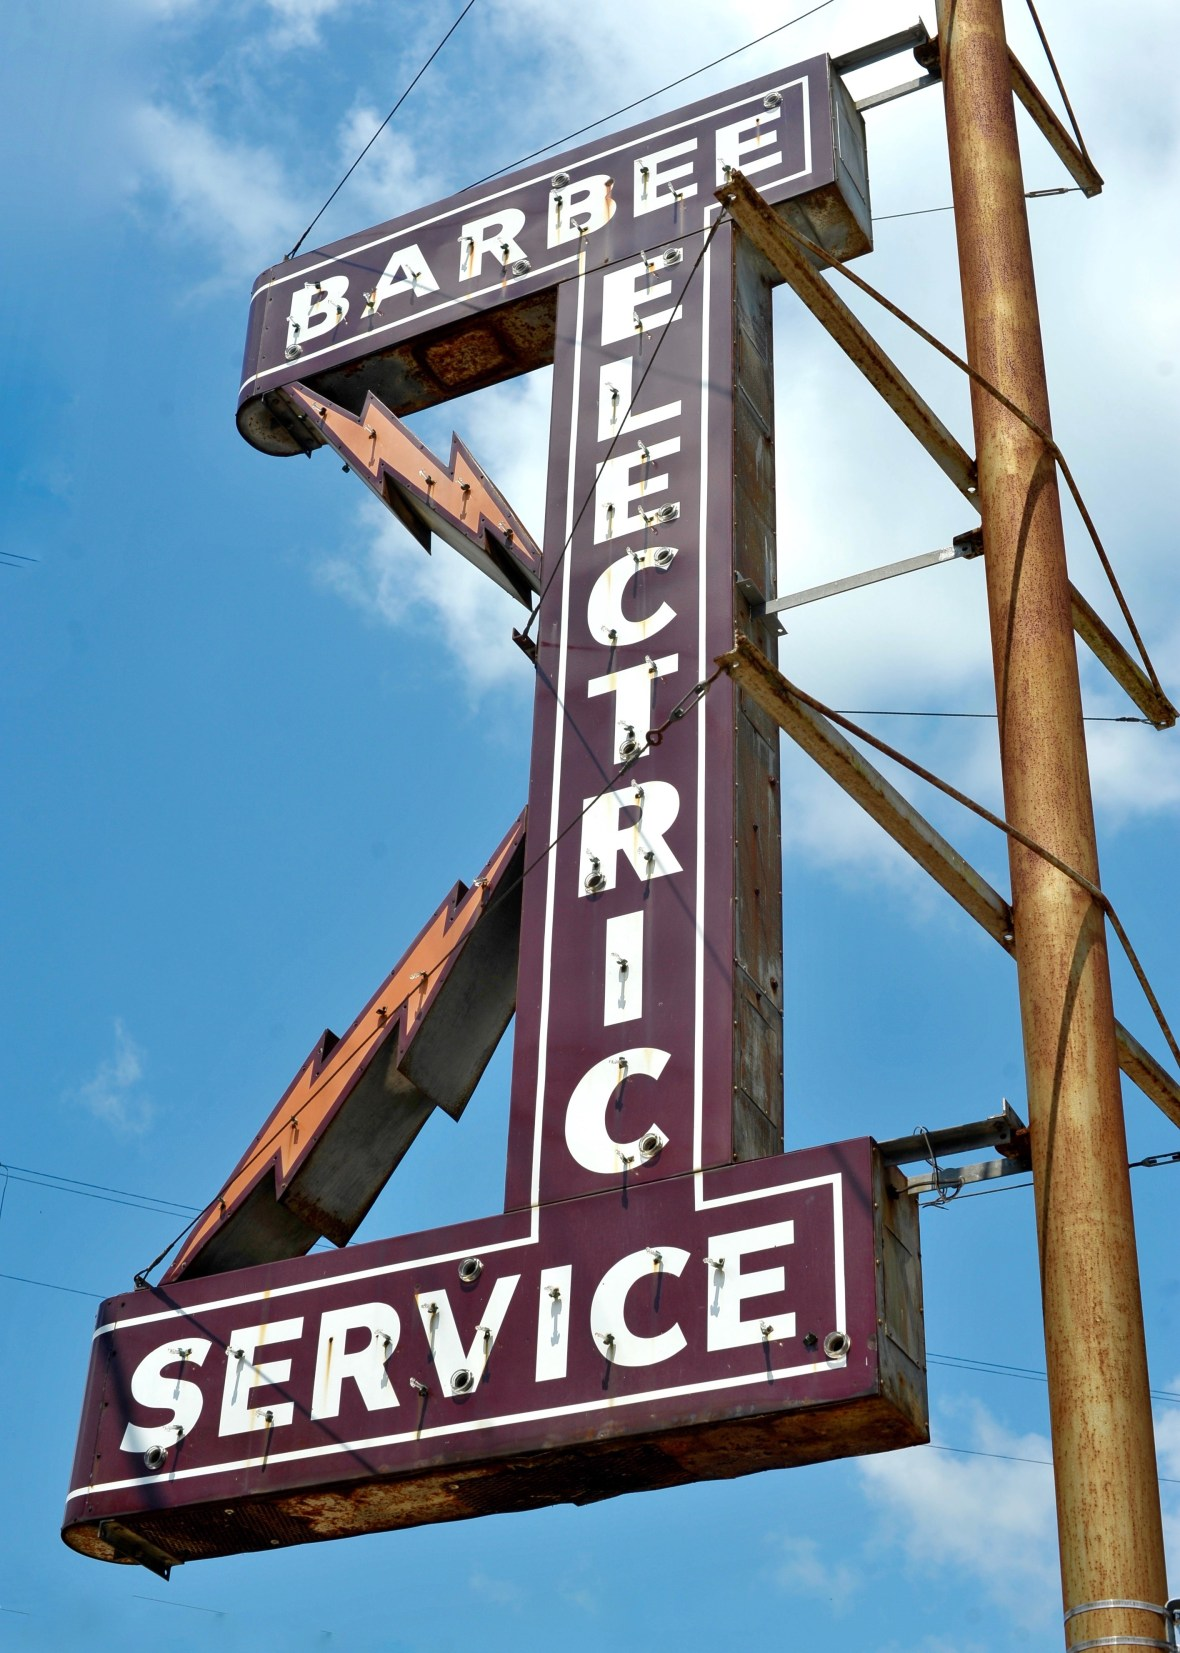 Barbee Electric Service - 401 East Caney Street, Wharton, Texas U.S.A. - September 2, 2016